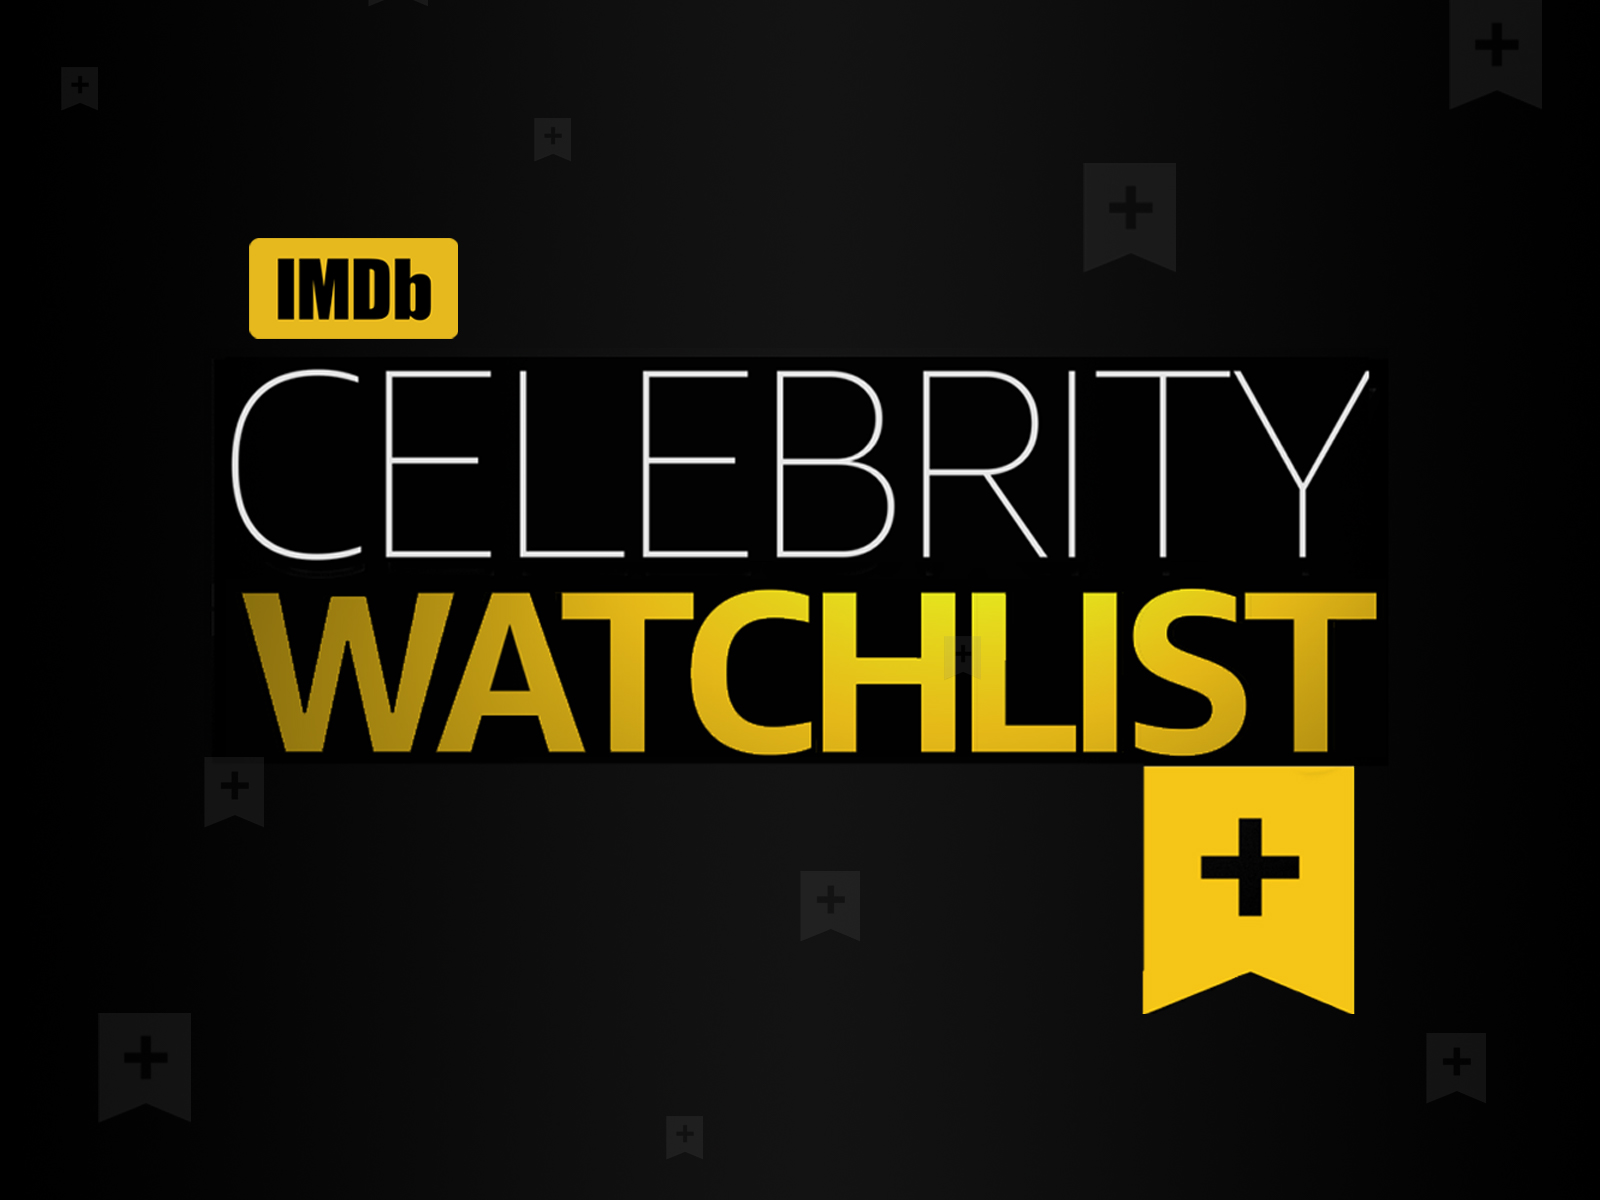 Celebrity watchlist - IMDb.Interview Format. Digital Series.Tastemakers curating playlists of the  media that they are binging or most excited to watch. Each episode, a new celebrity shares their personalized Watchlists, revealing their favorite movies, shows and guilty pleasures.